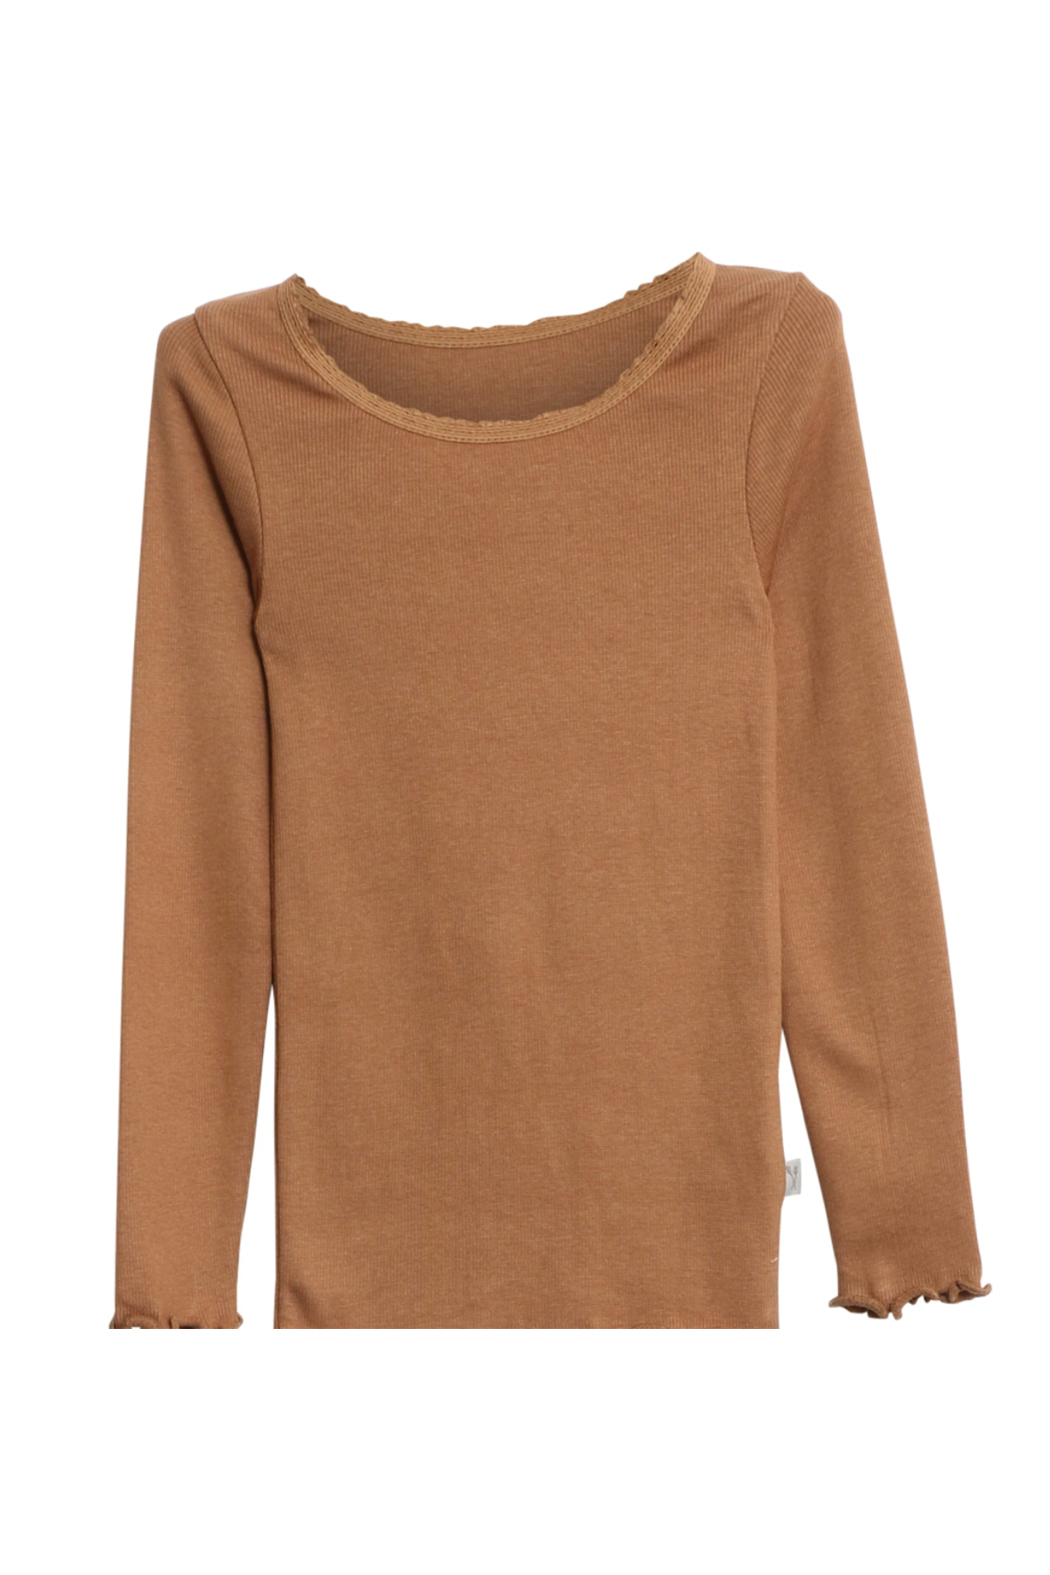 Wheat Rib T-Shirt Lace LS Caramel - Front Cropped Image